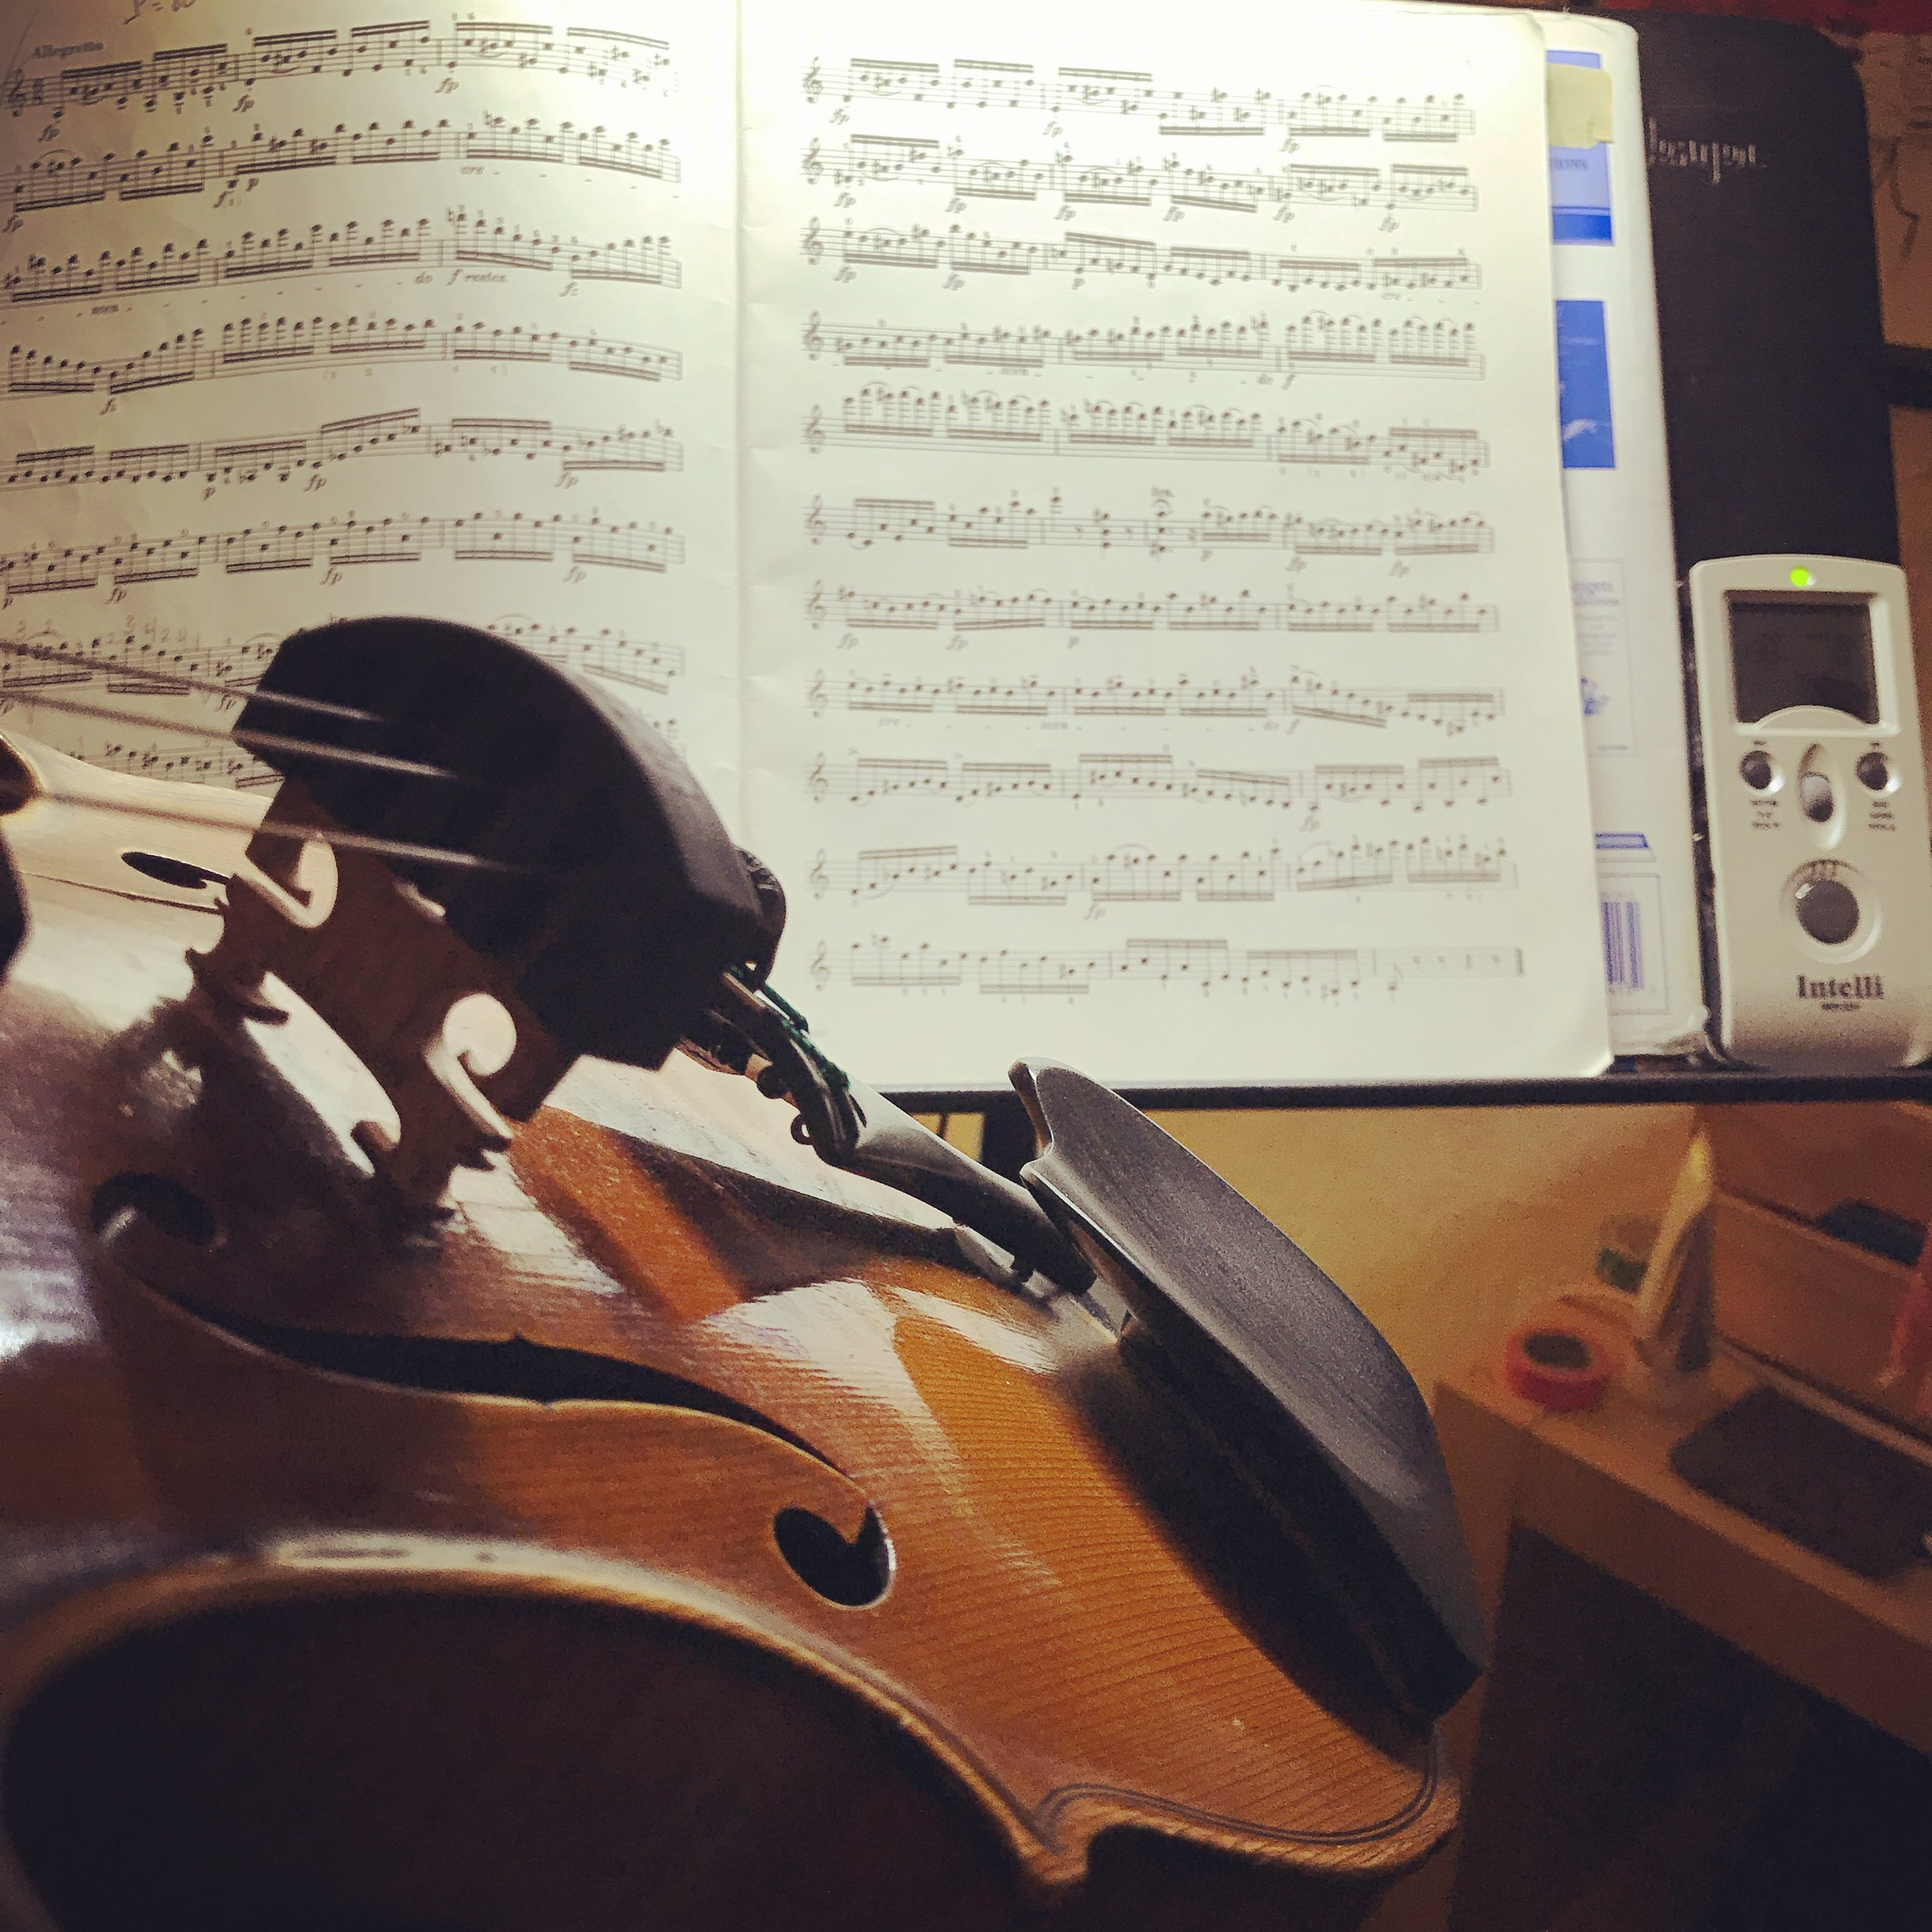 Late night practice IS possible in small doses.